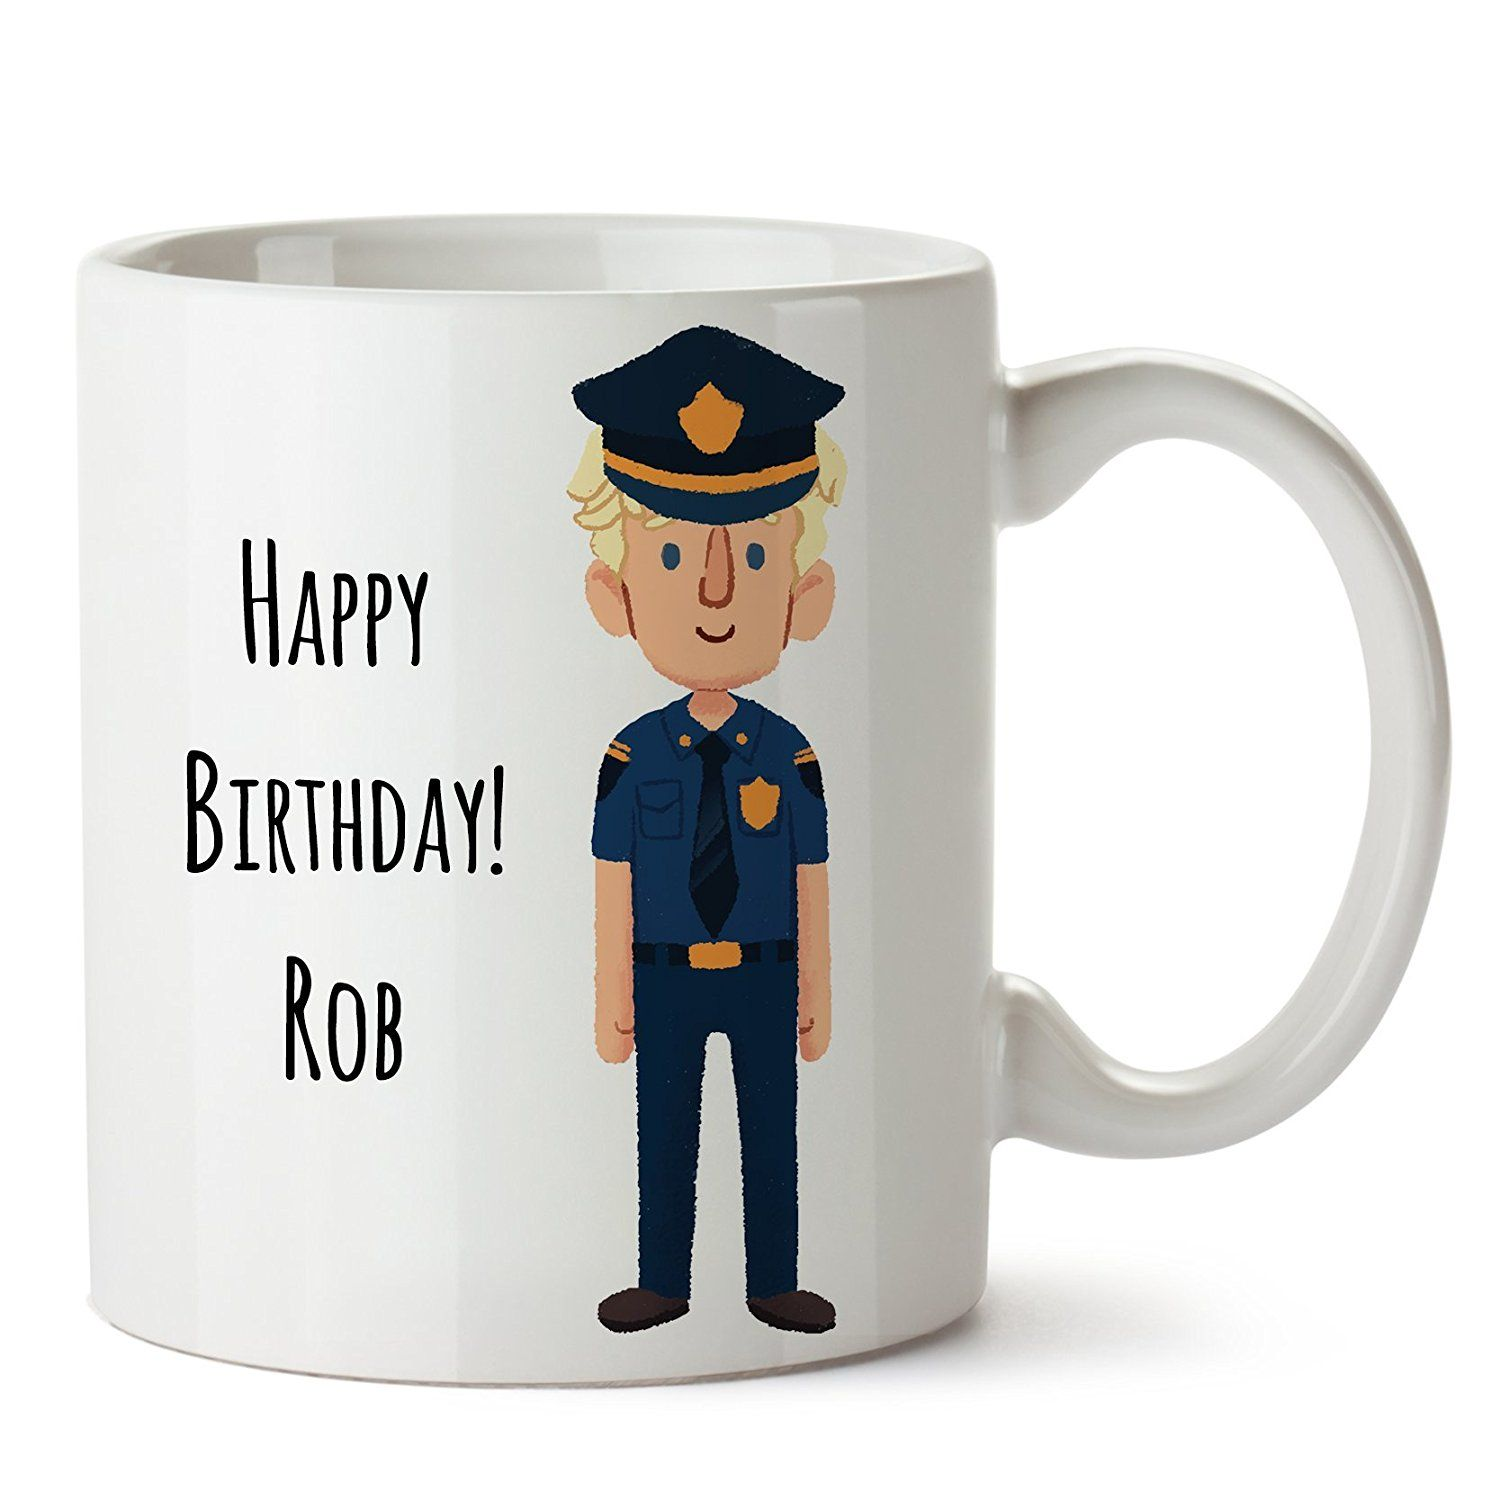 Personalized Police Officer Coffee Mug, Create a Cute and